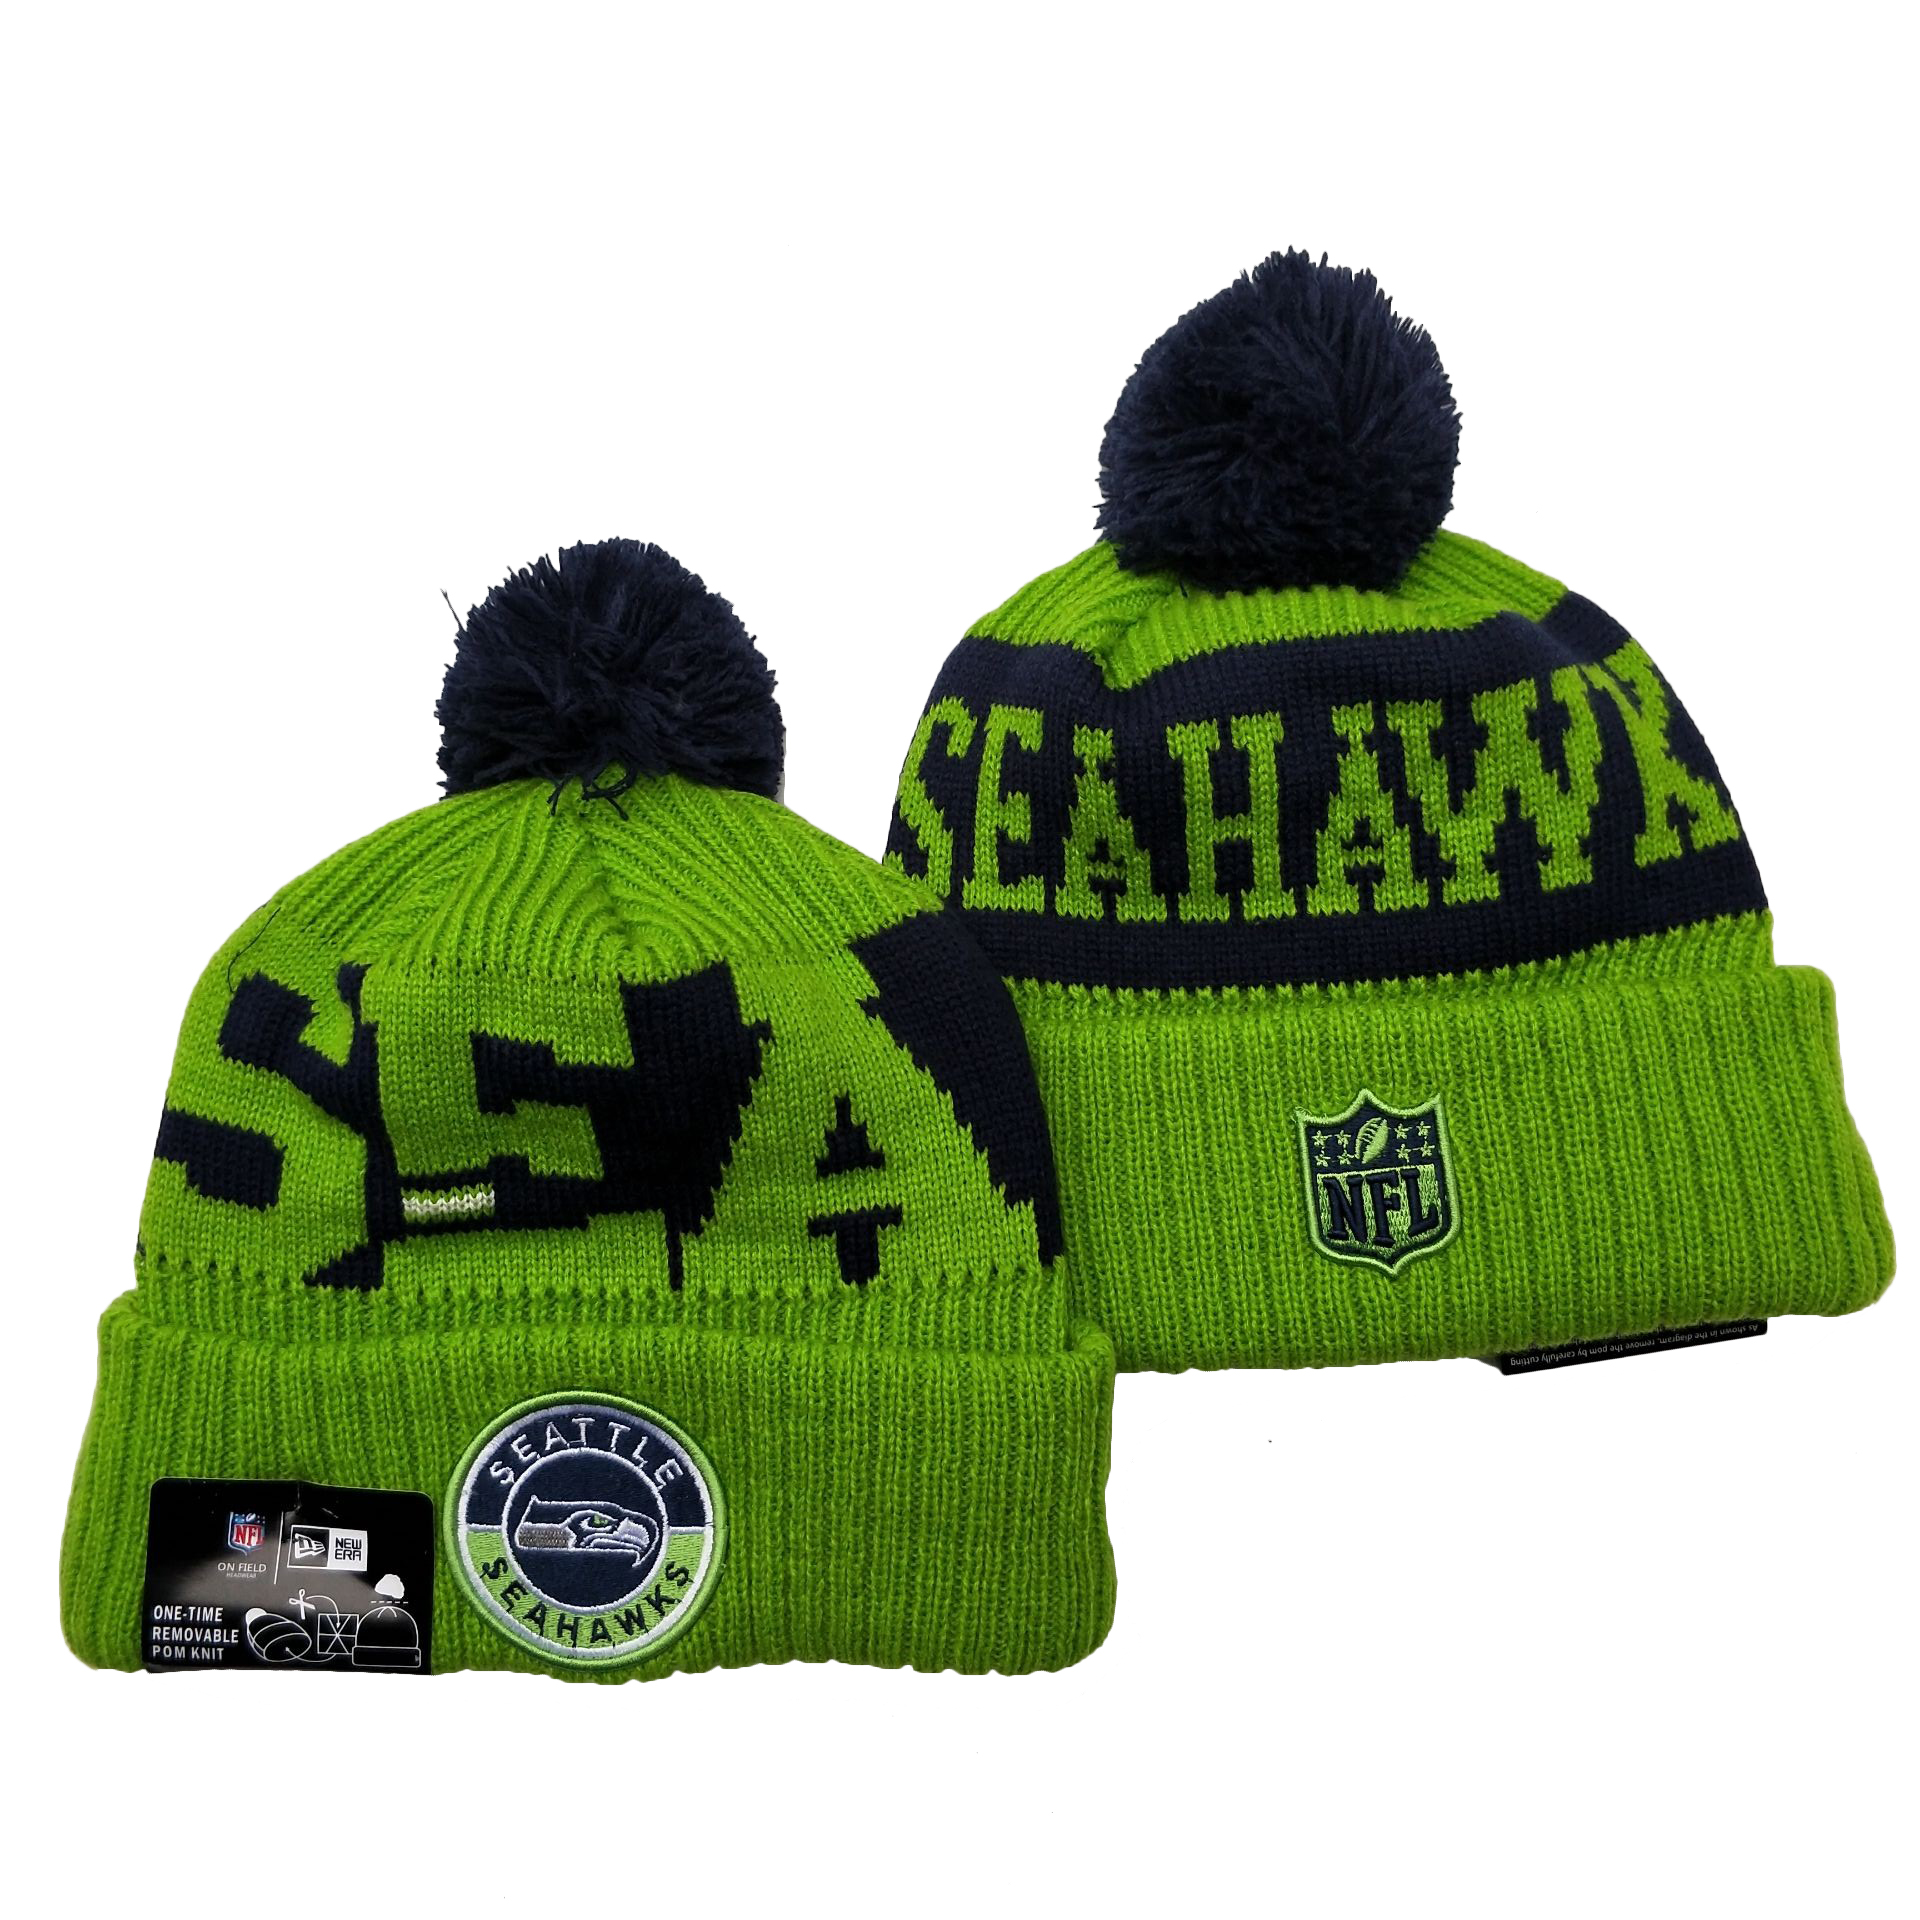 Seahawks Team Logo Green 2020 NFL Sideline Pom Cuffed Knit Hat YD